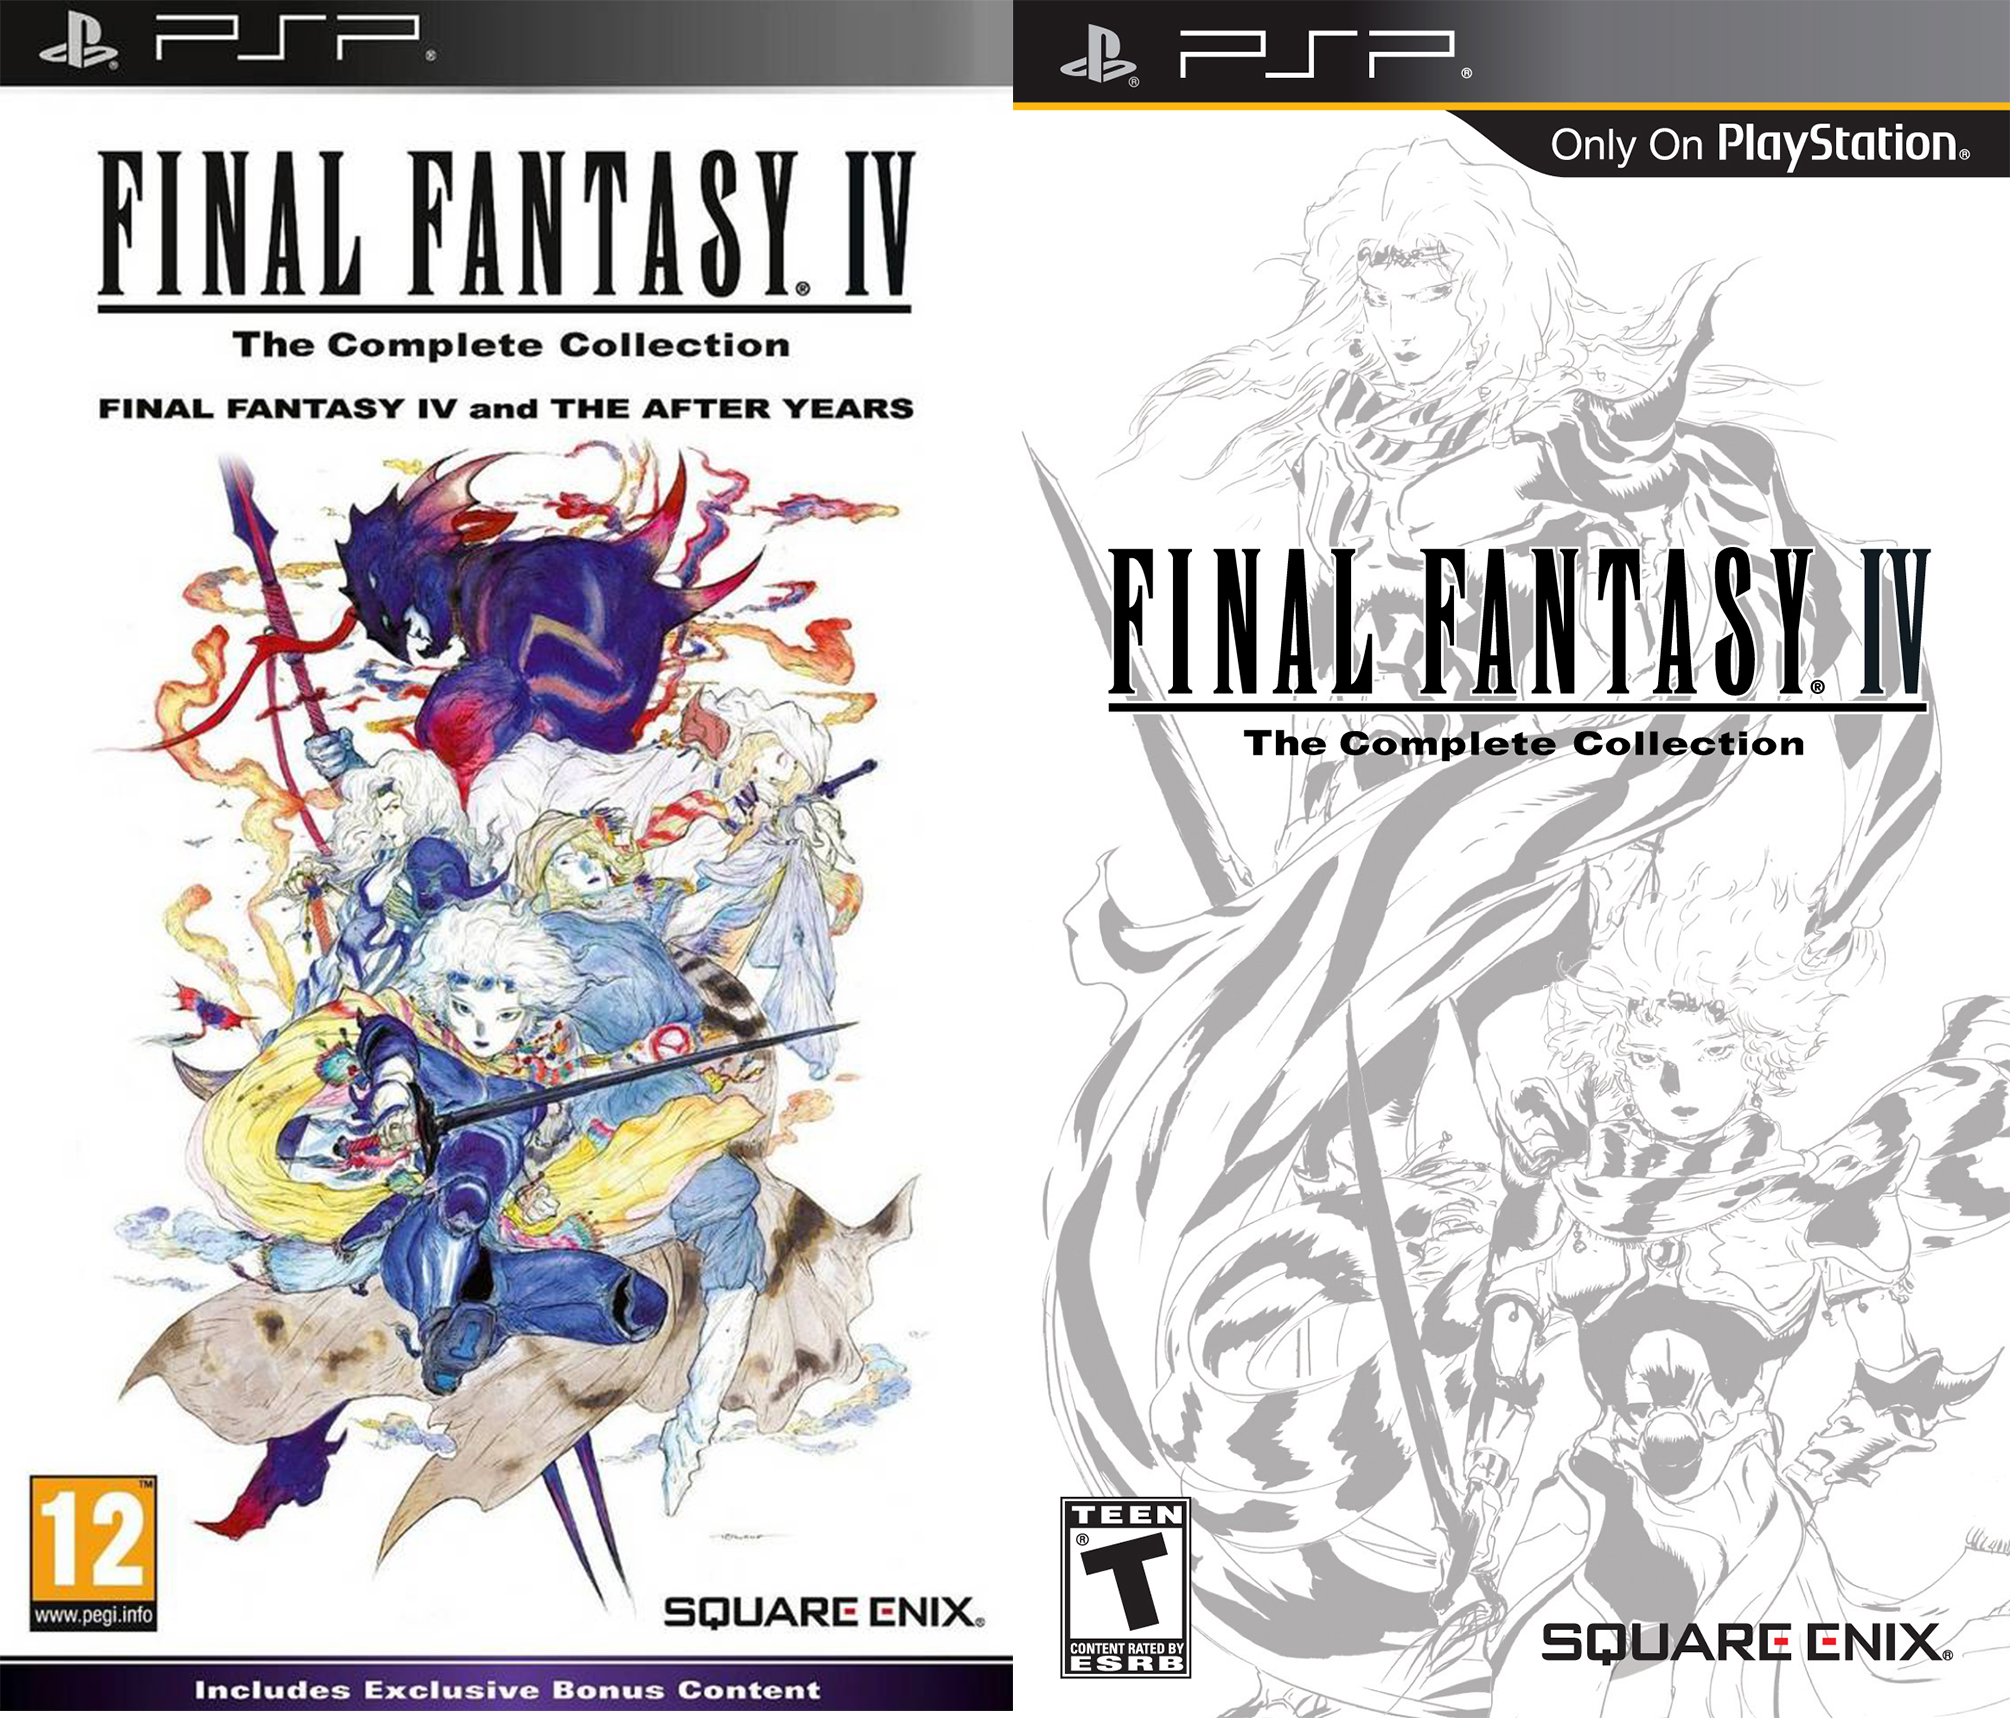 The PSP covers.